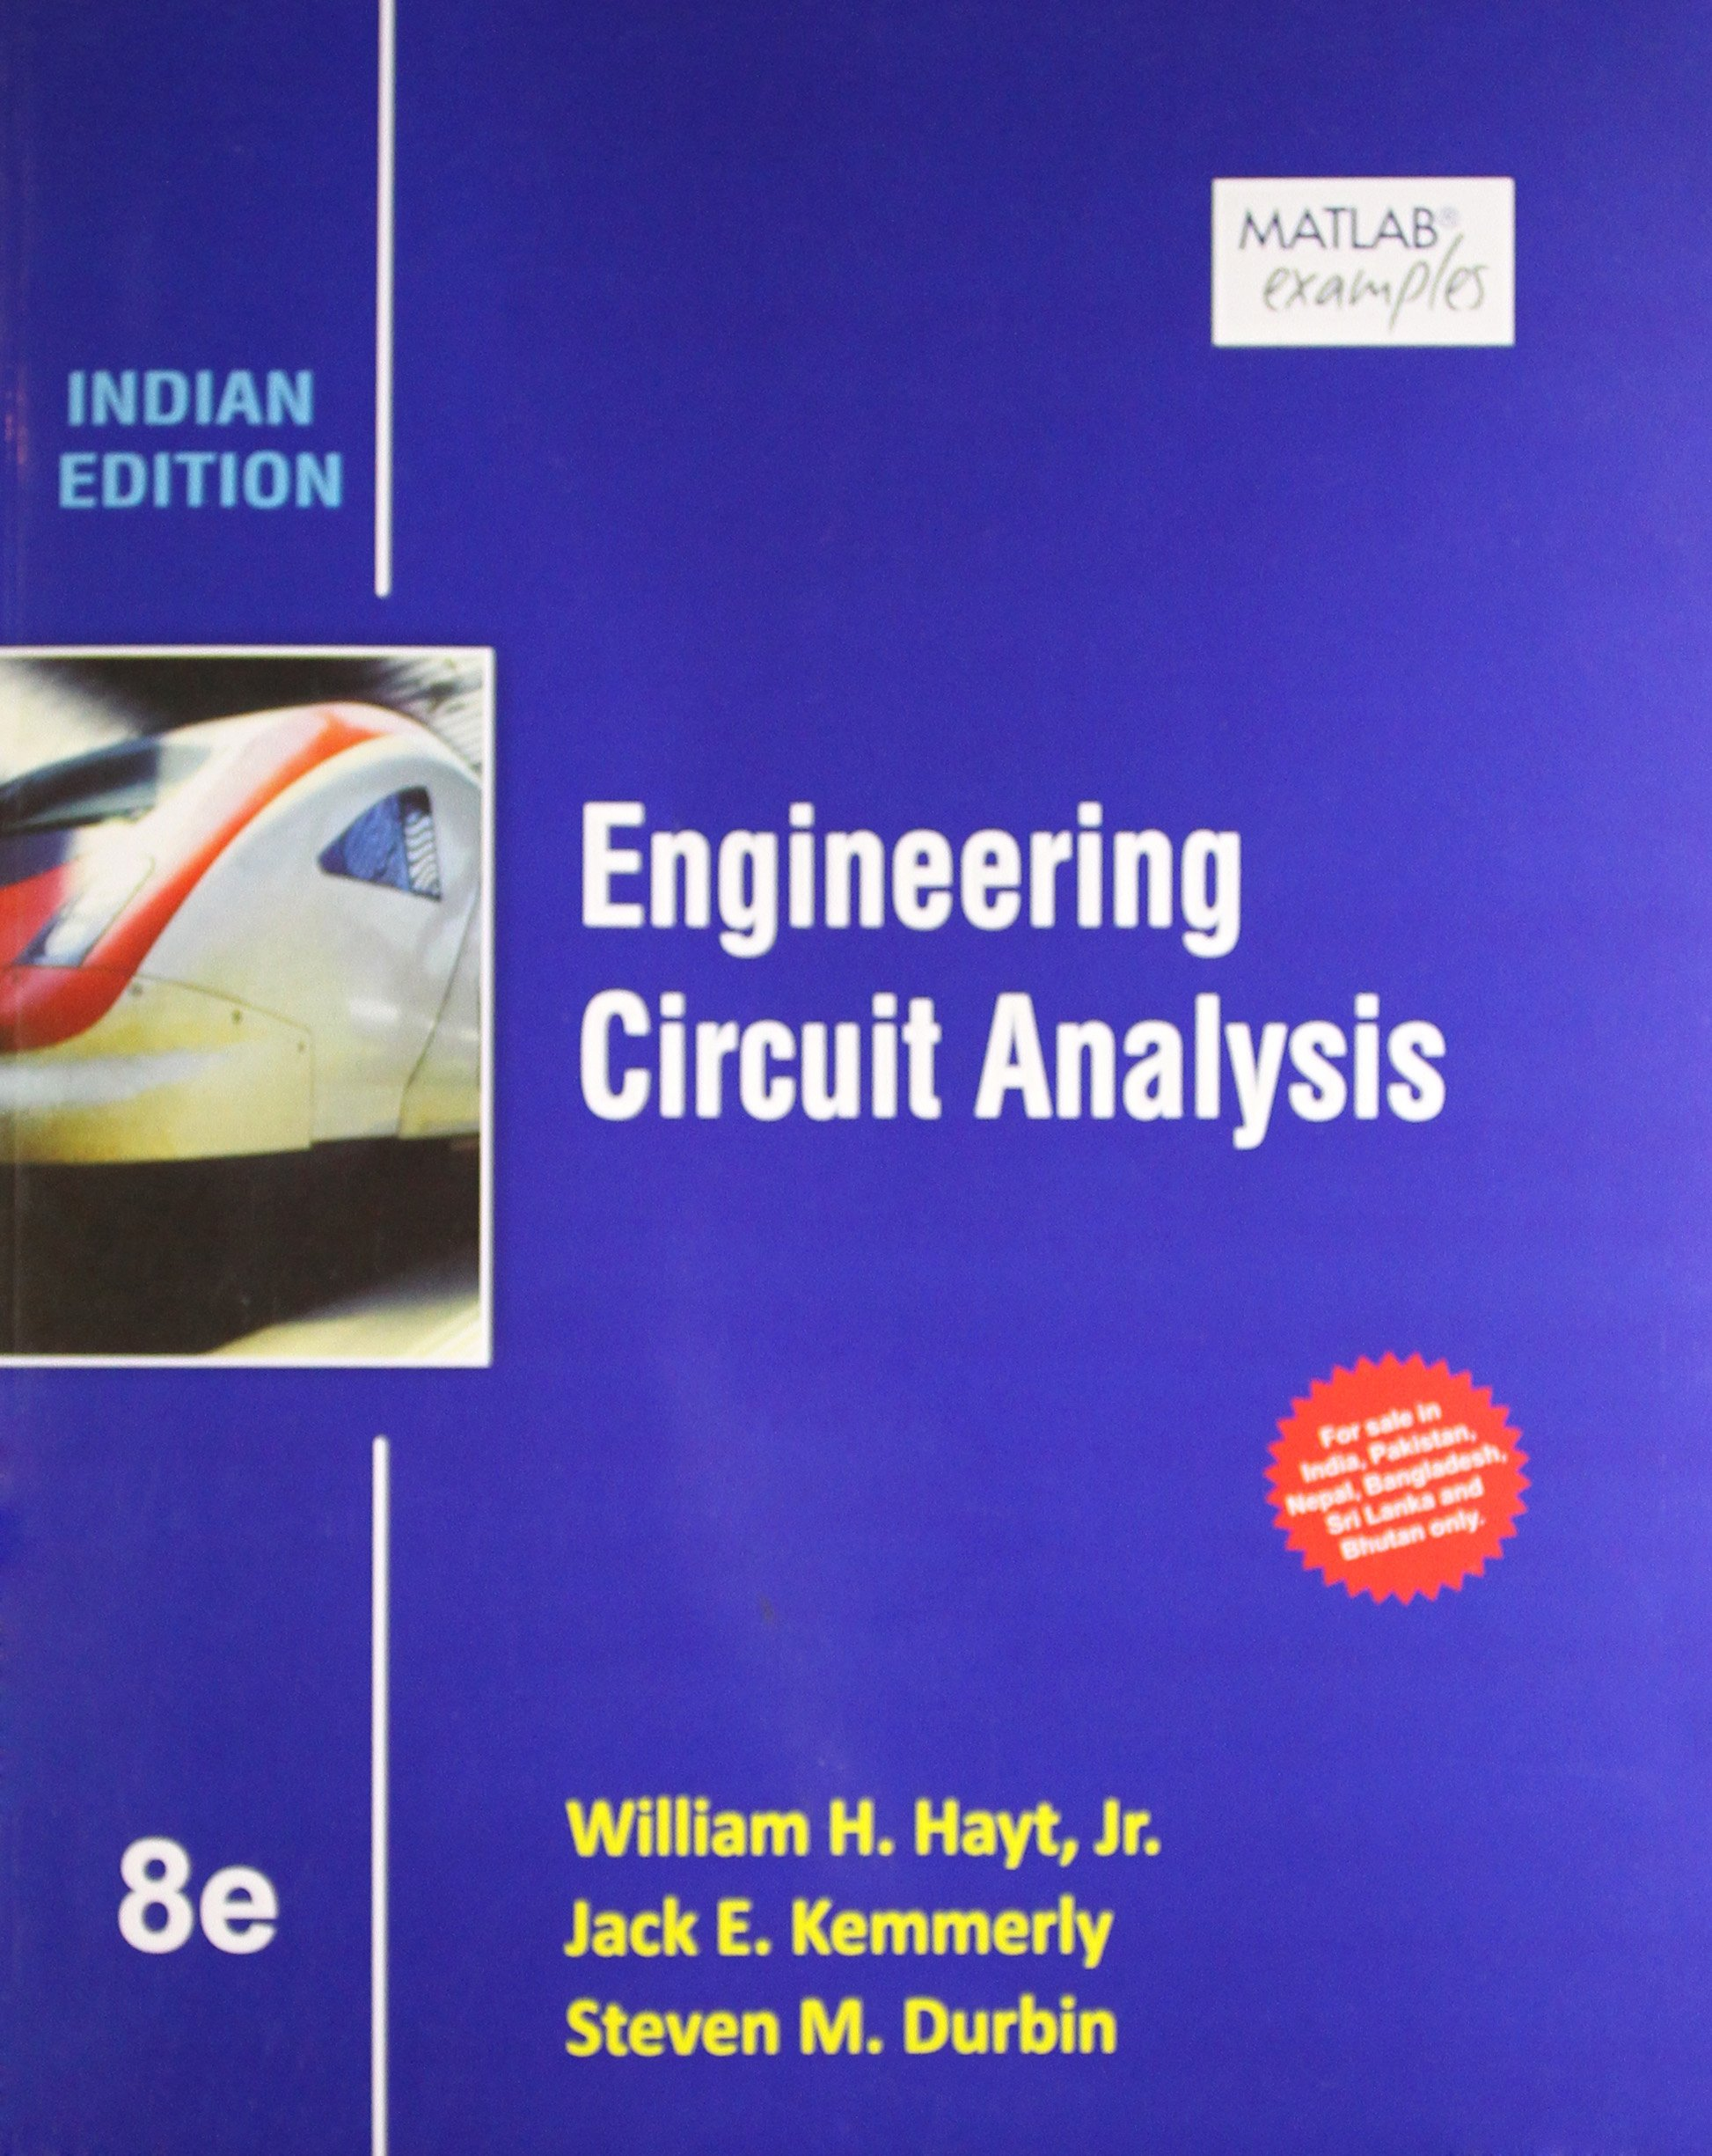 buy engineering circuit analysis book online at low prices in indiaengineering circuit analysis paperback \u2013 4 aug 2013